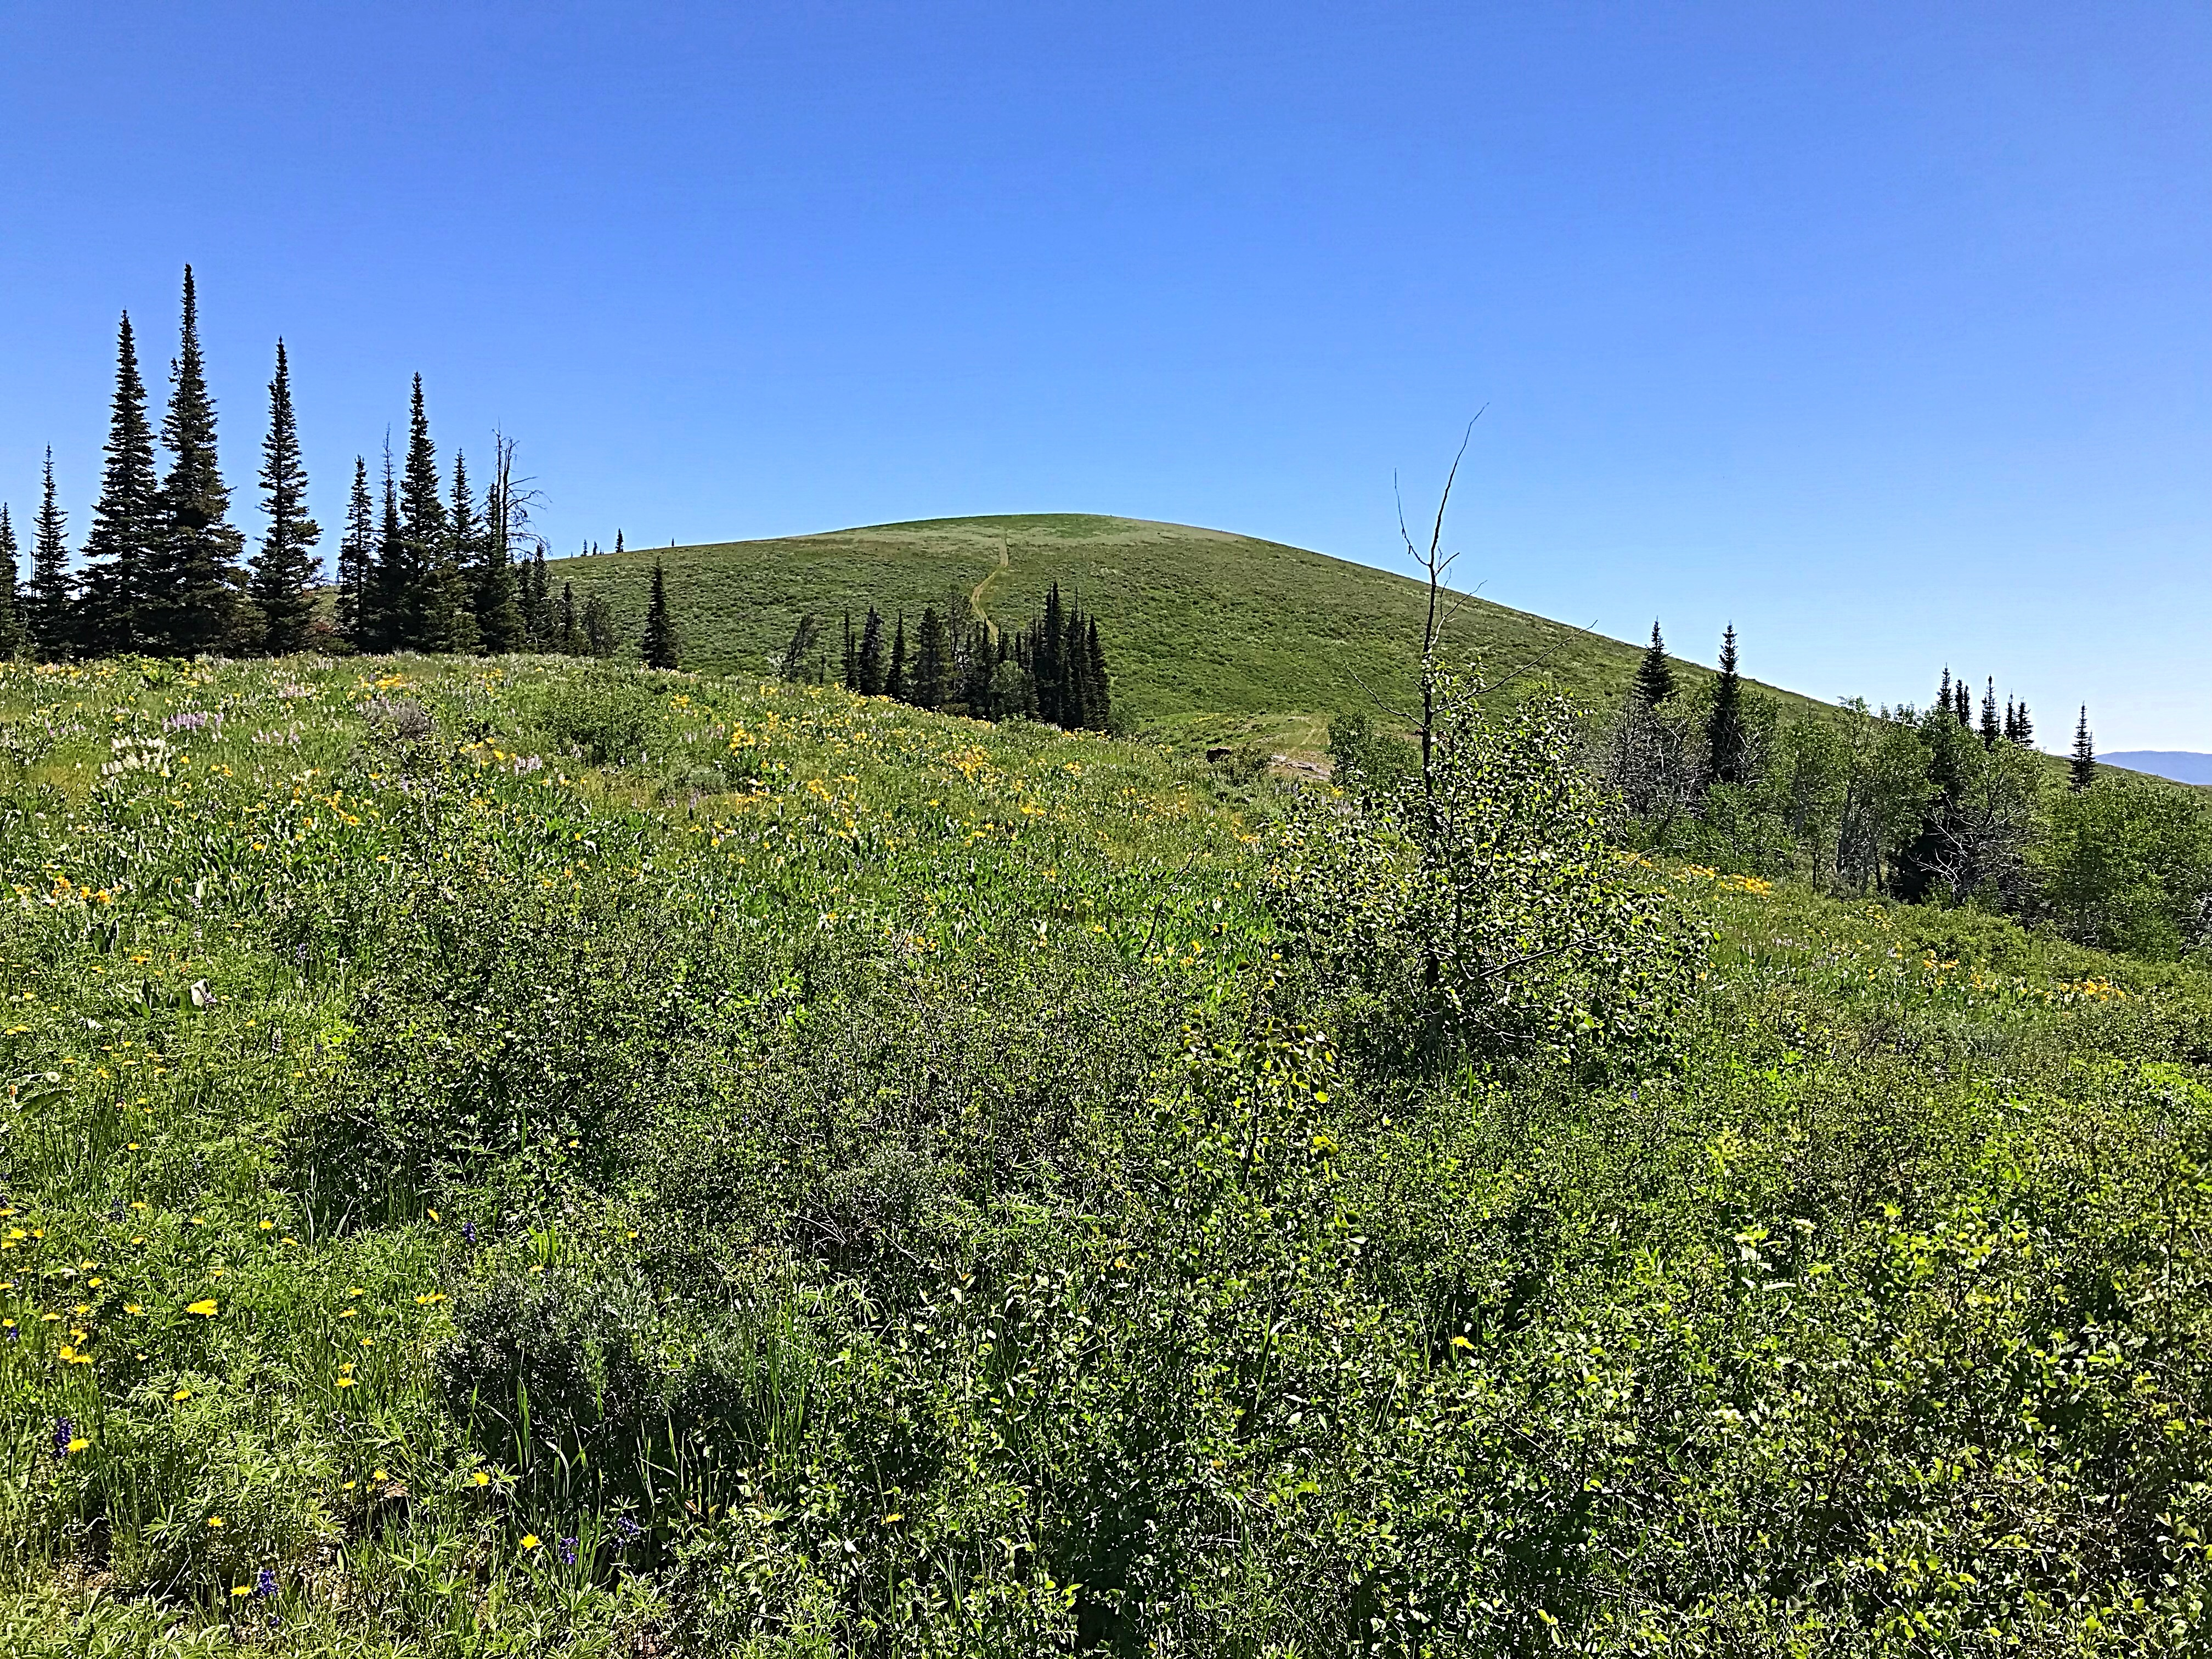 Trapper Peak's west face. The seldom used ATV track to the summit is visible.